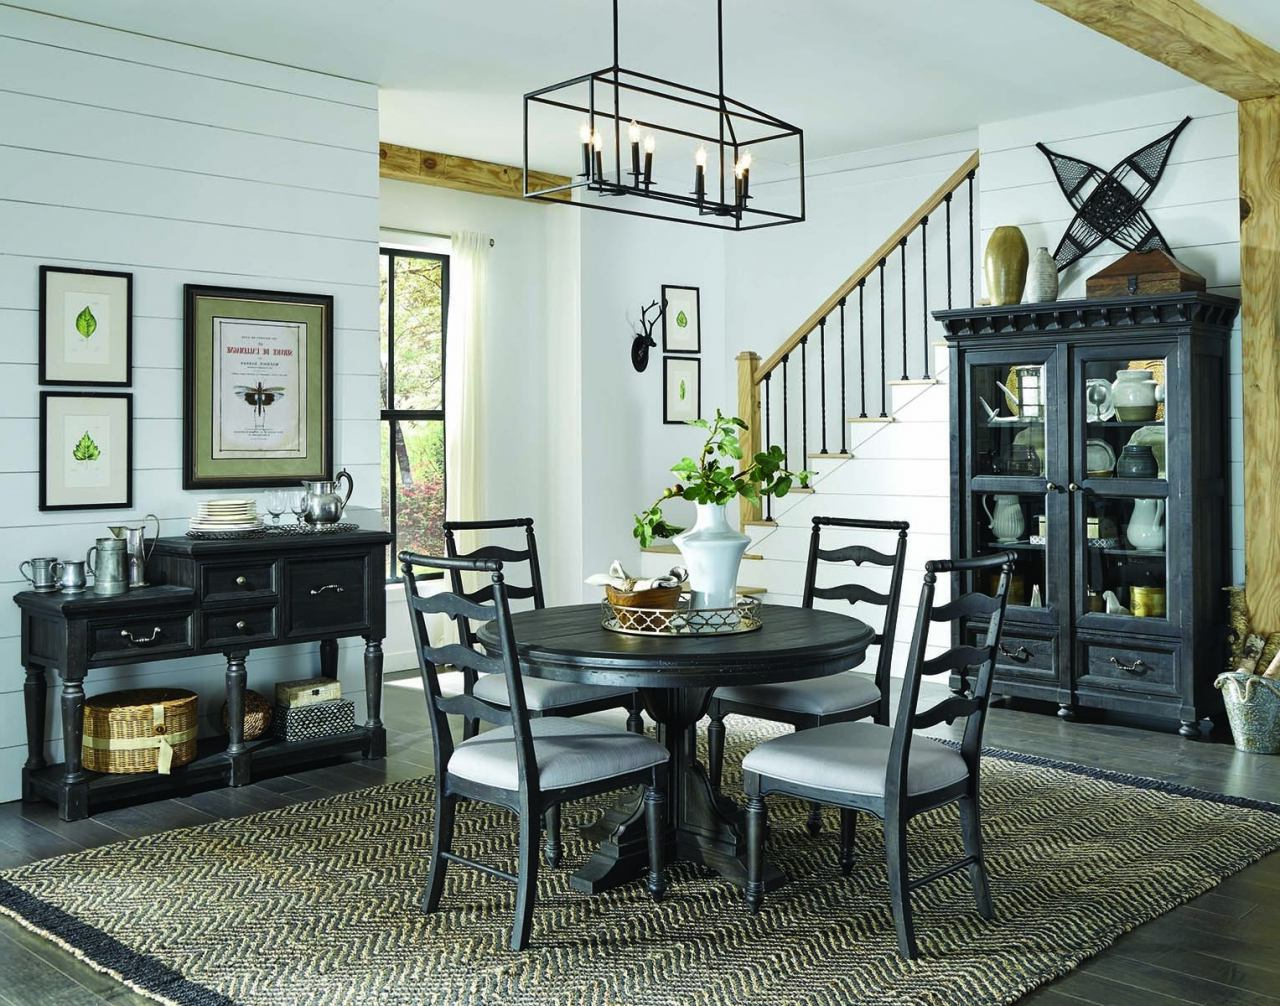 Bedfo 3 Piece Dining Sets With Widely Used Magnussen Furniture Bedford Corners 5pc Round Dining Set In Anvil Black (View 10 of 20)